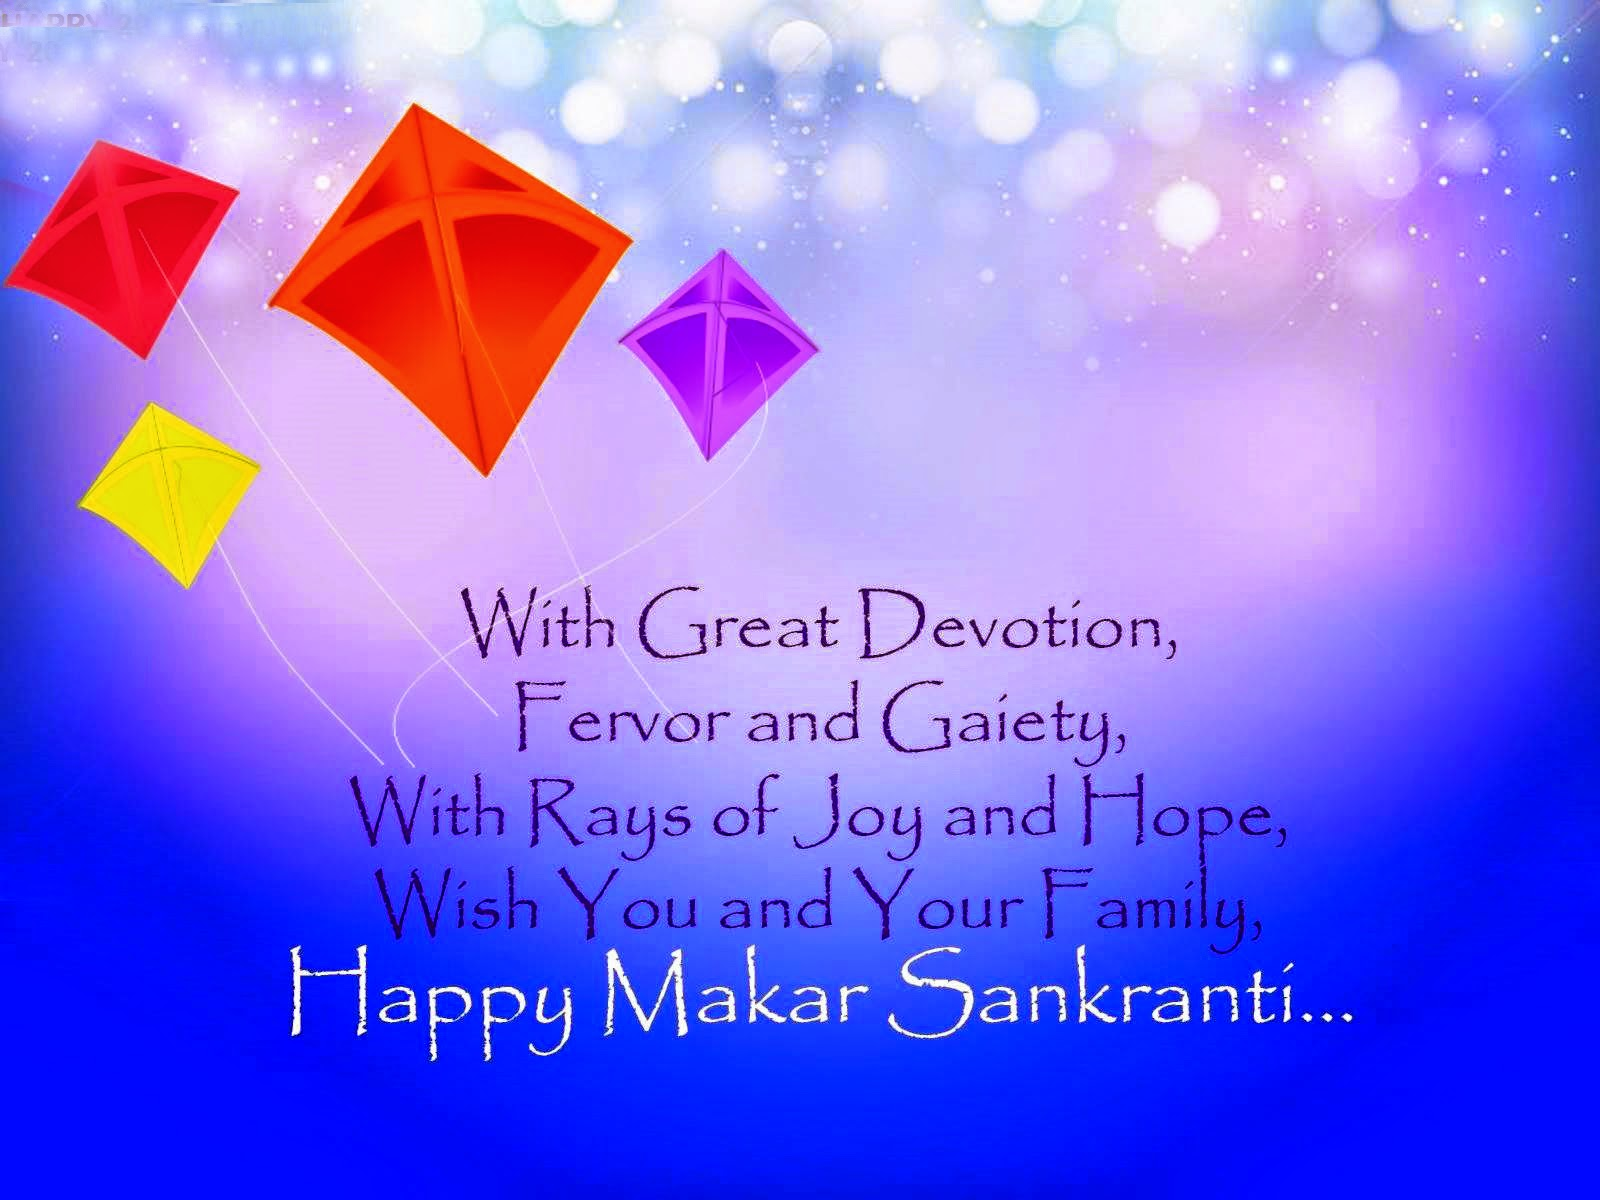 Whishing Happy Uttarayan Colorfull Kites Hd Images 2015